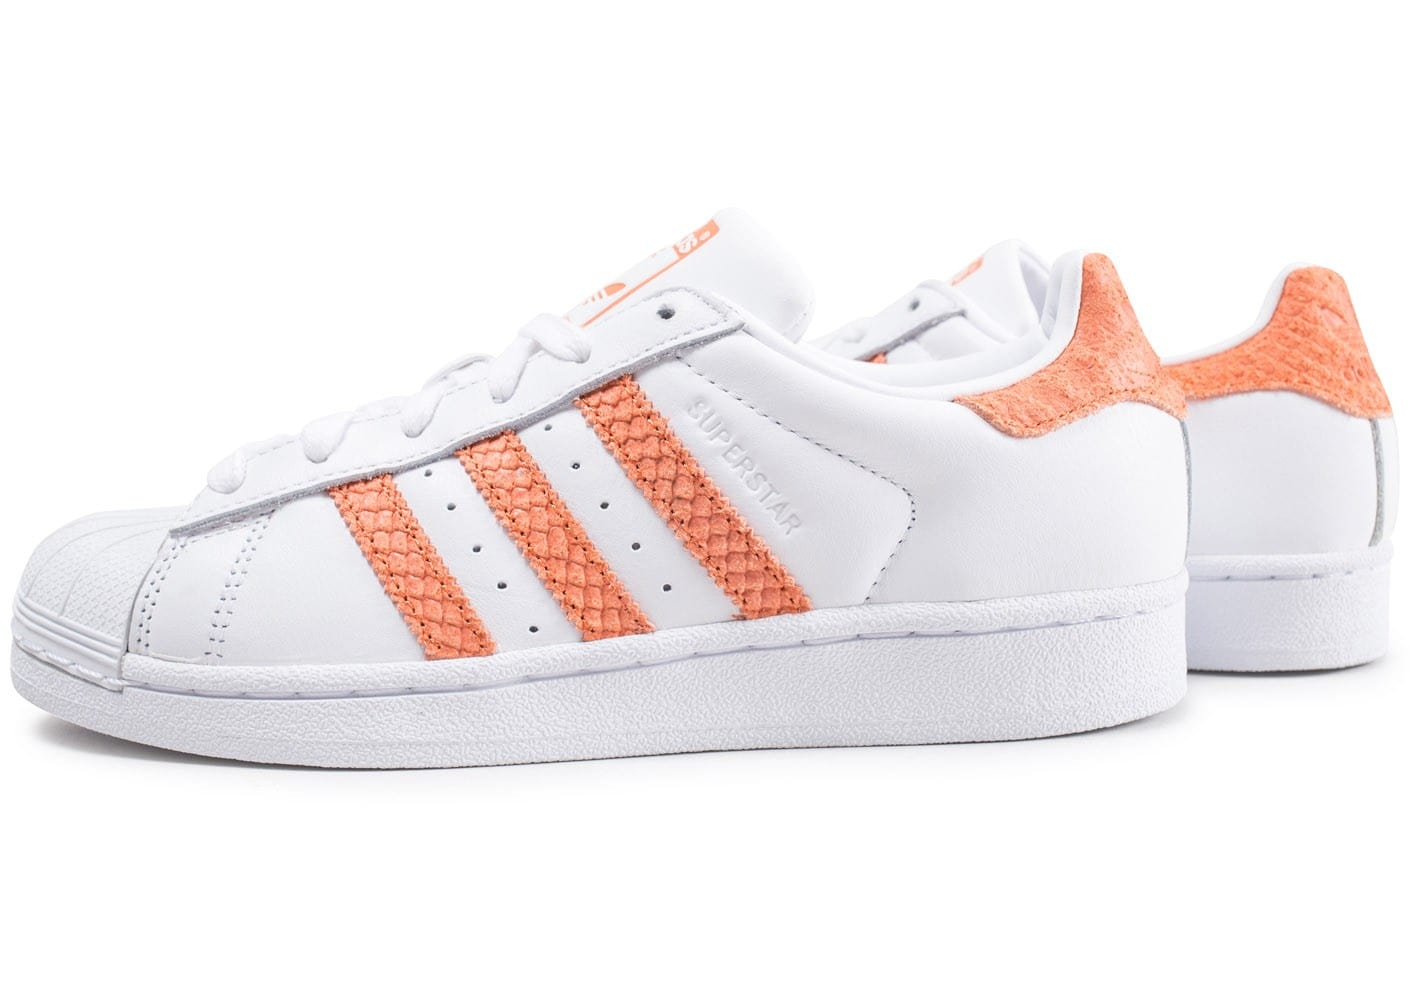 adidas Superstar blanche et orange - Chaussures